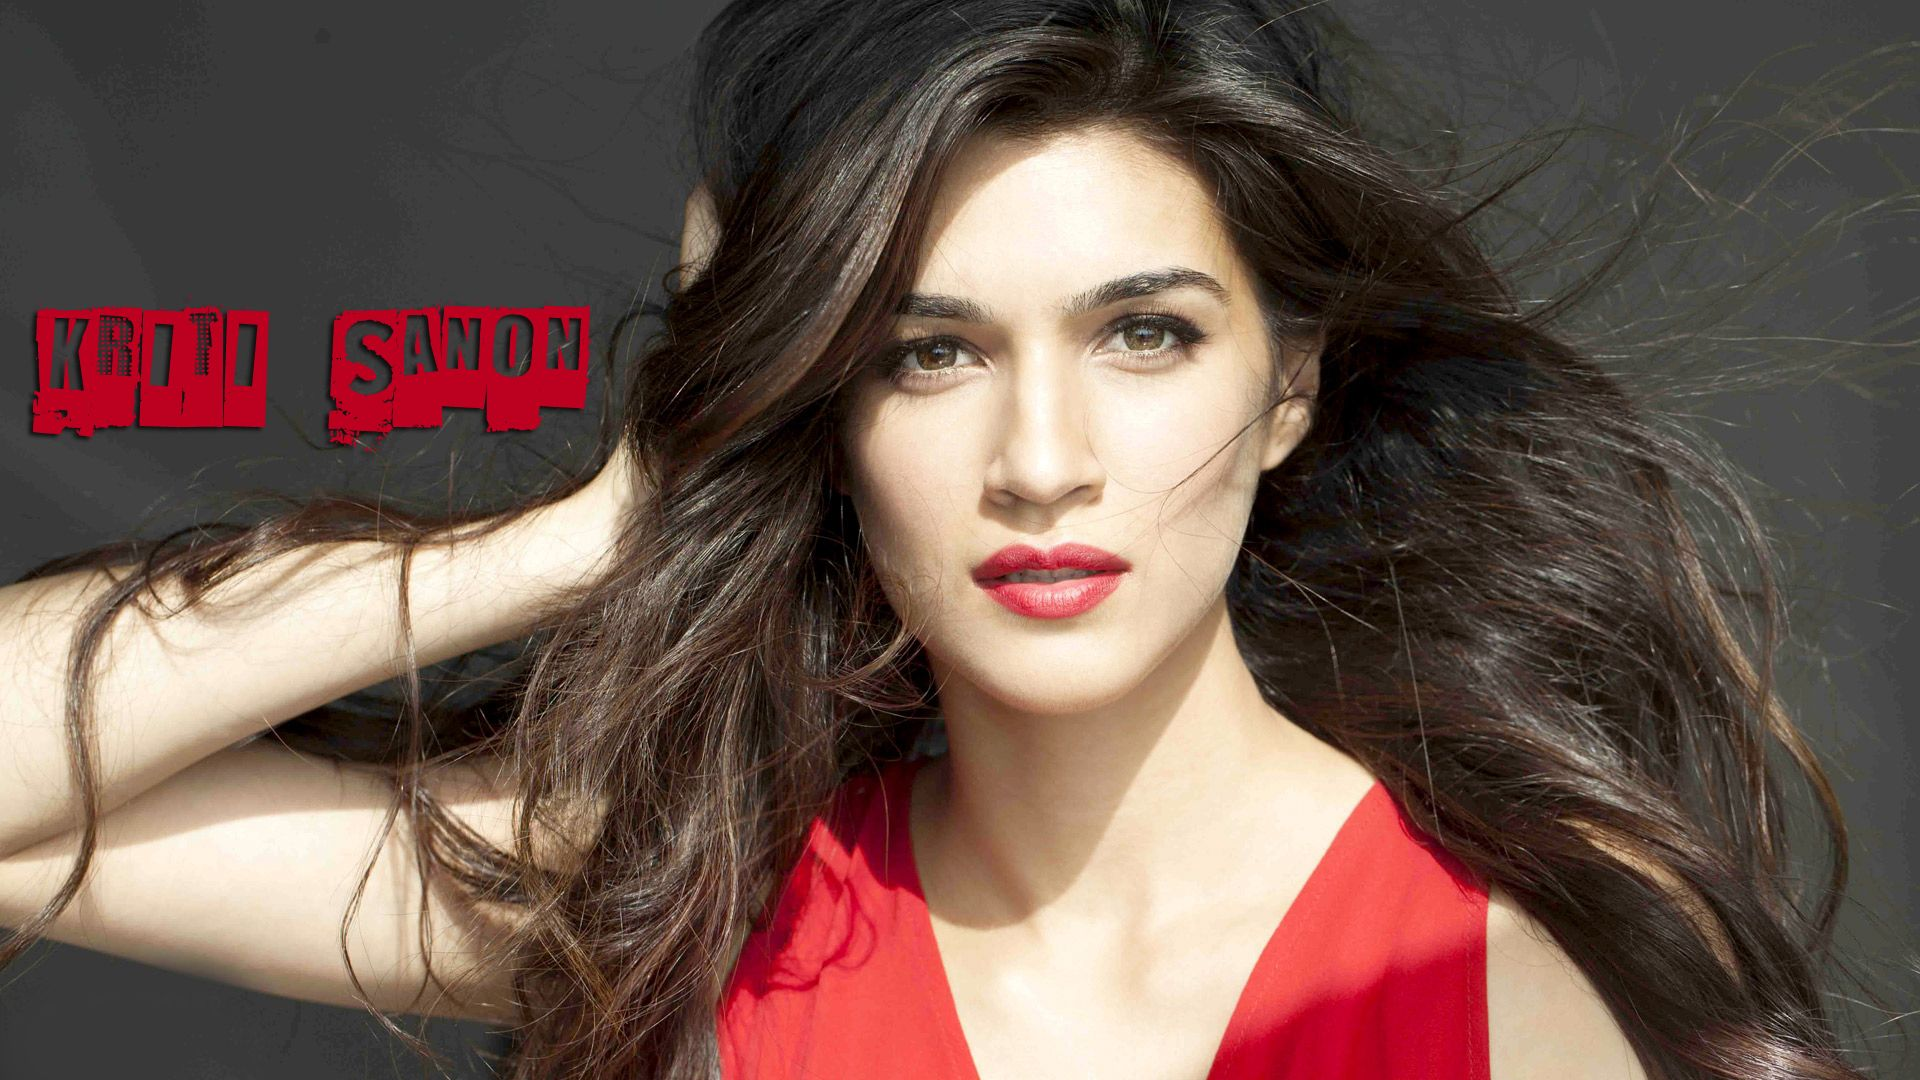 Bollywood Actors Walpaper In 2080p: Kriti Sanon HD Wallpaper Kriti Sanon, Bollywood Actress